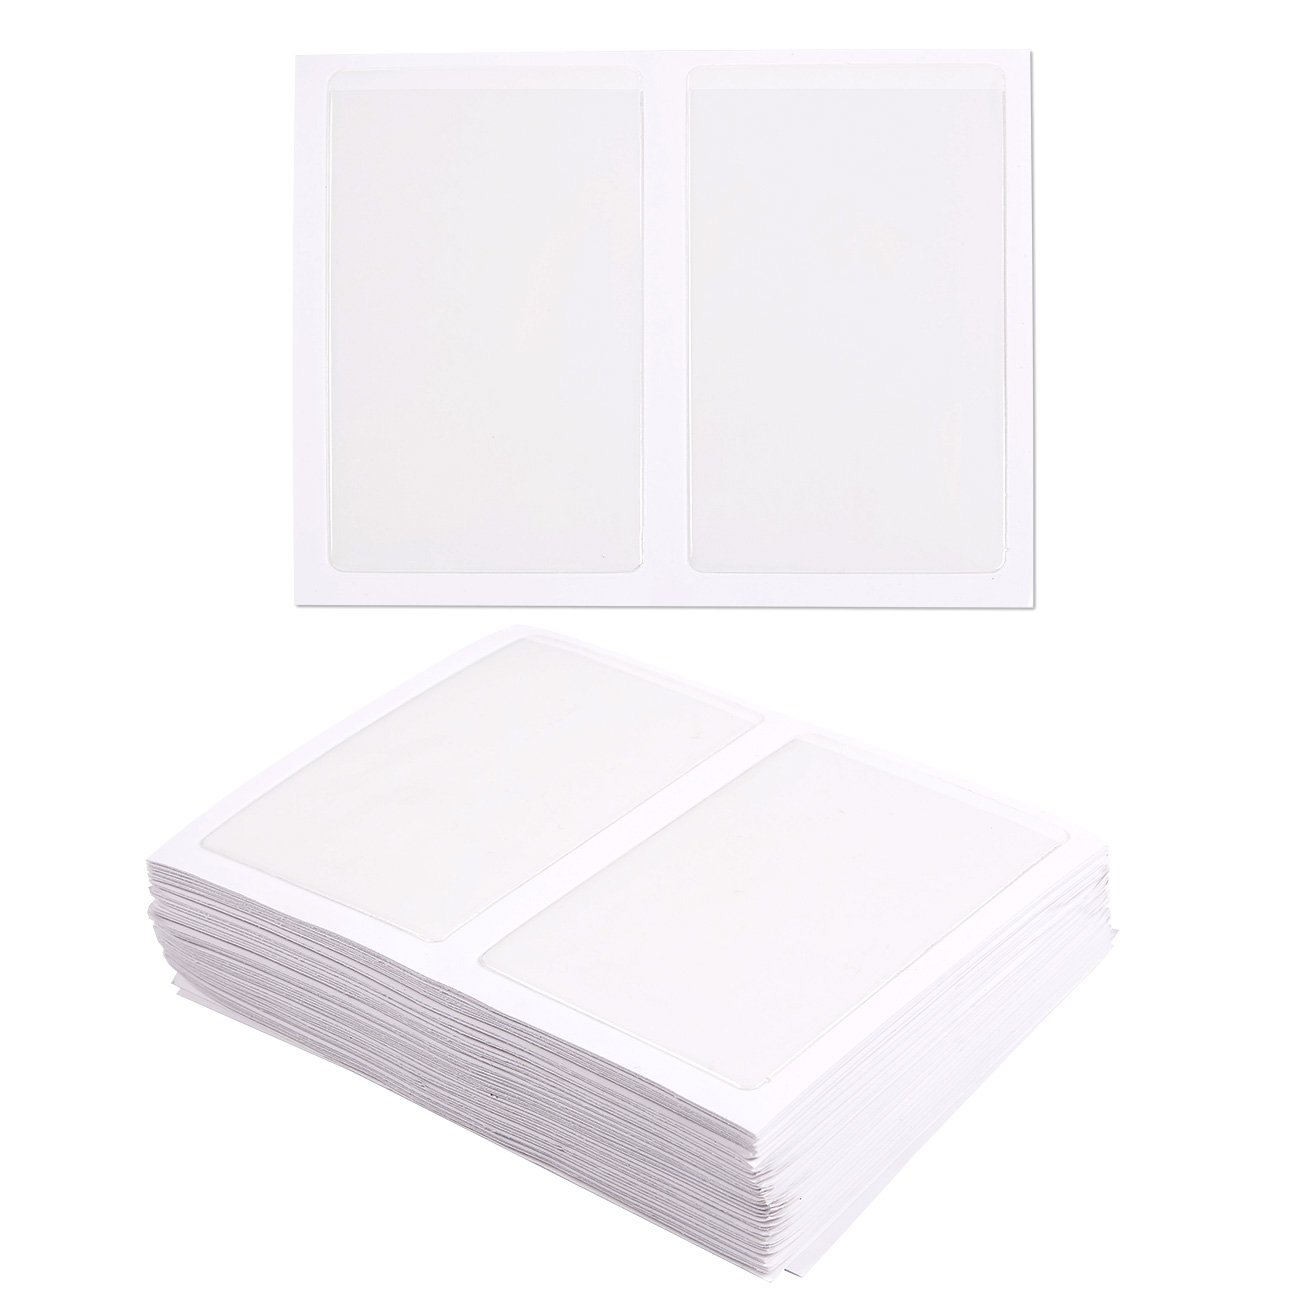 Juvale 100-Pack Self-Adhesive Business Card Holders - Pockets Open on Short Side - Ideal Organizing Safe Archiving Your Business Cards - Crystal Clear Plastic, 3.7 x 2.3 inches